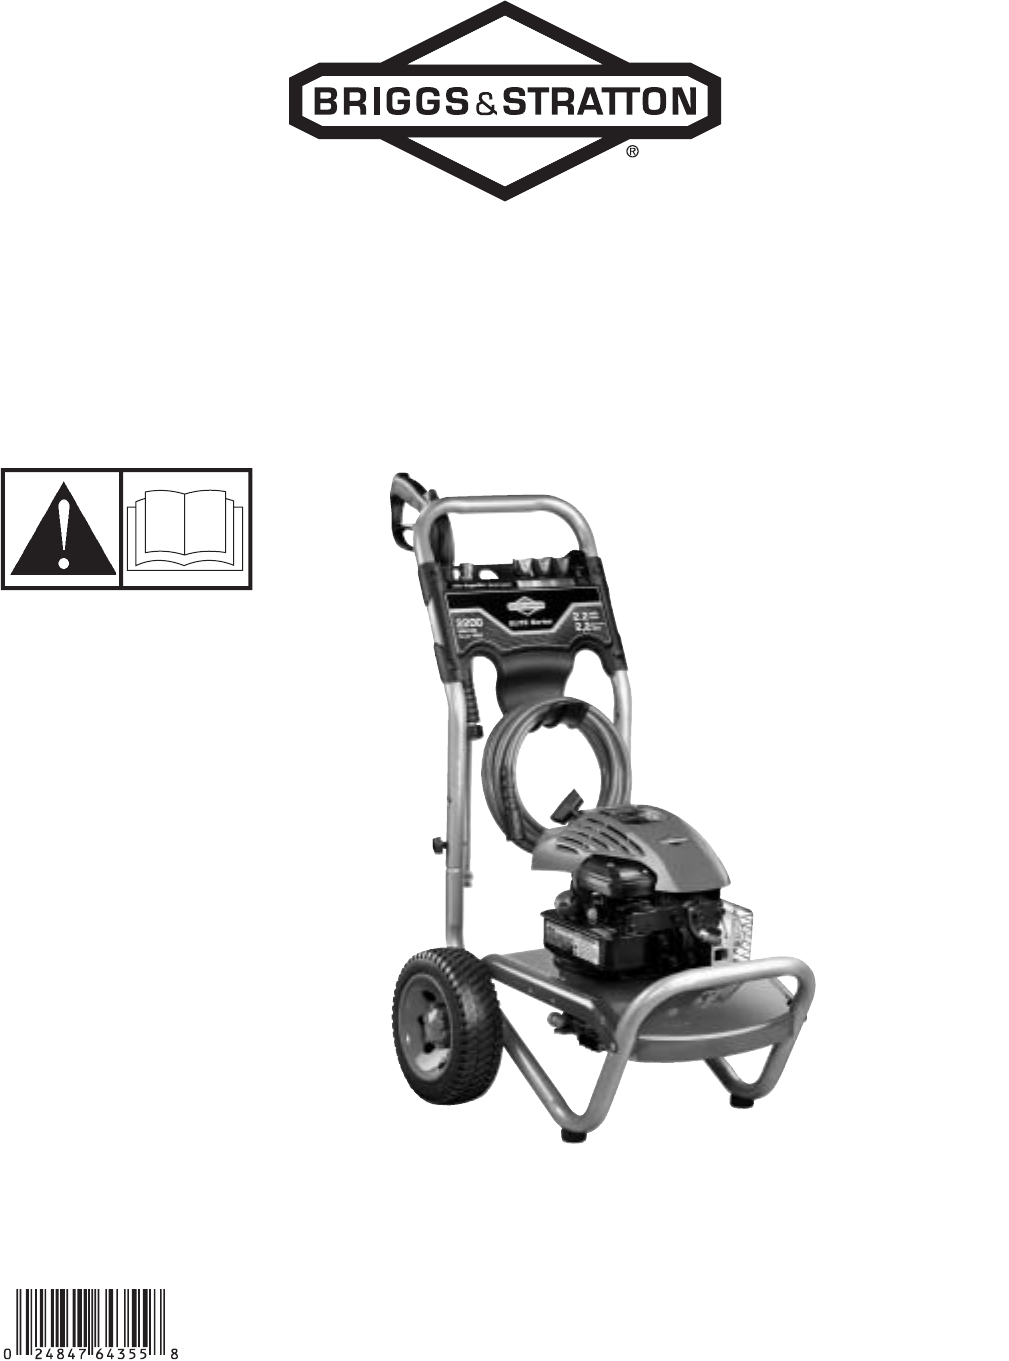 Briggs & Stratton Pressure Washer Pressure Washer User